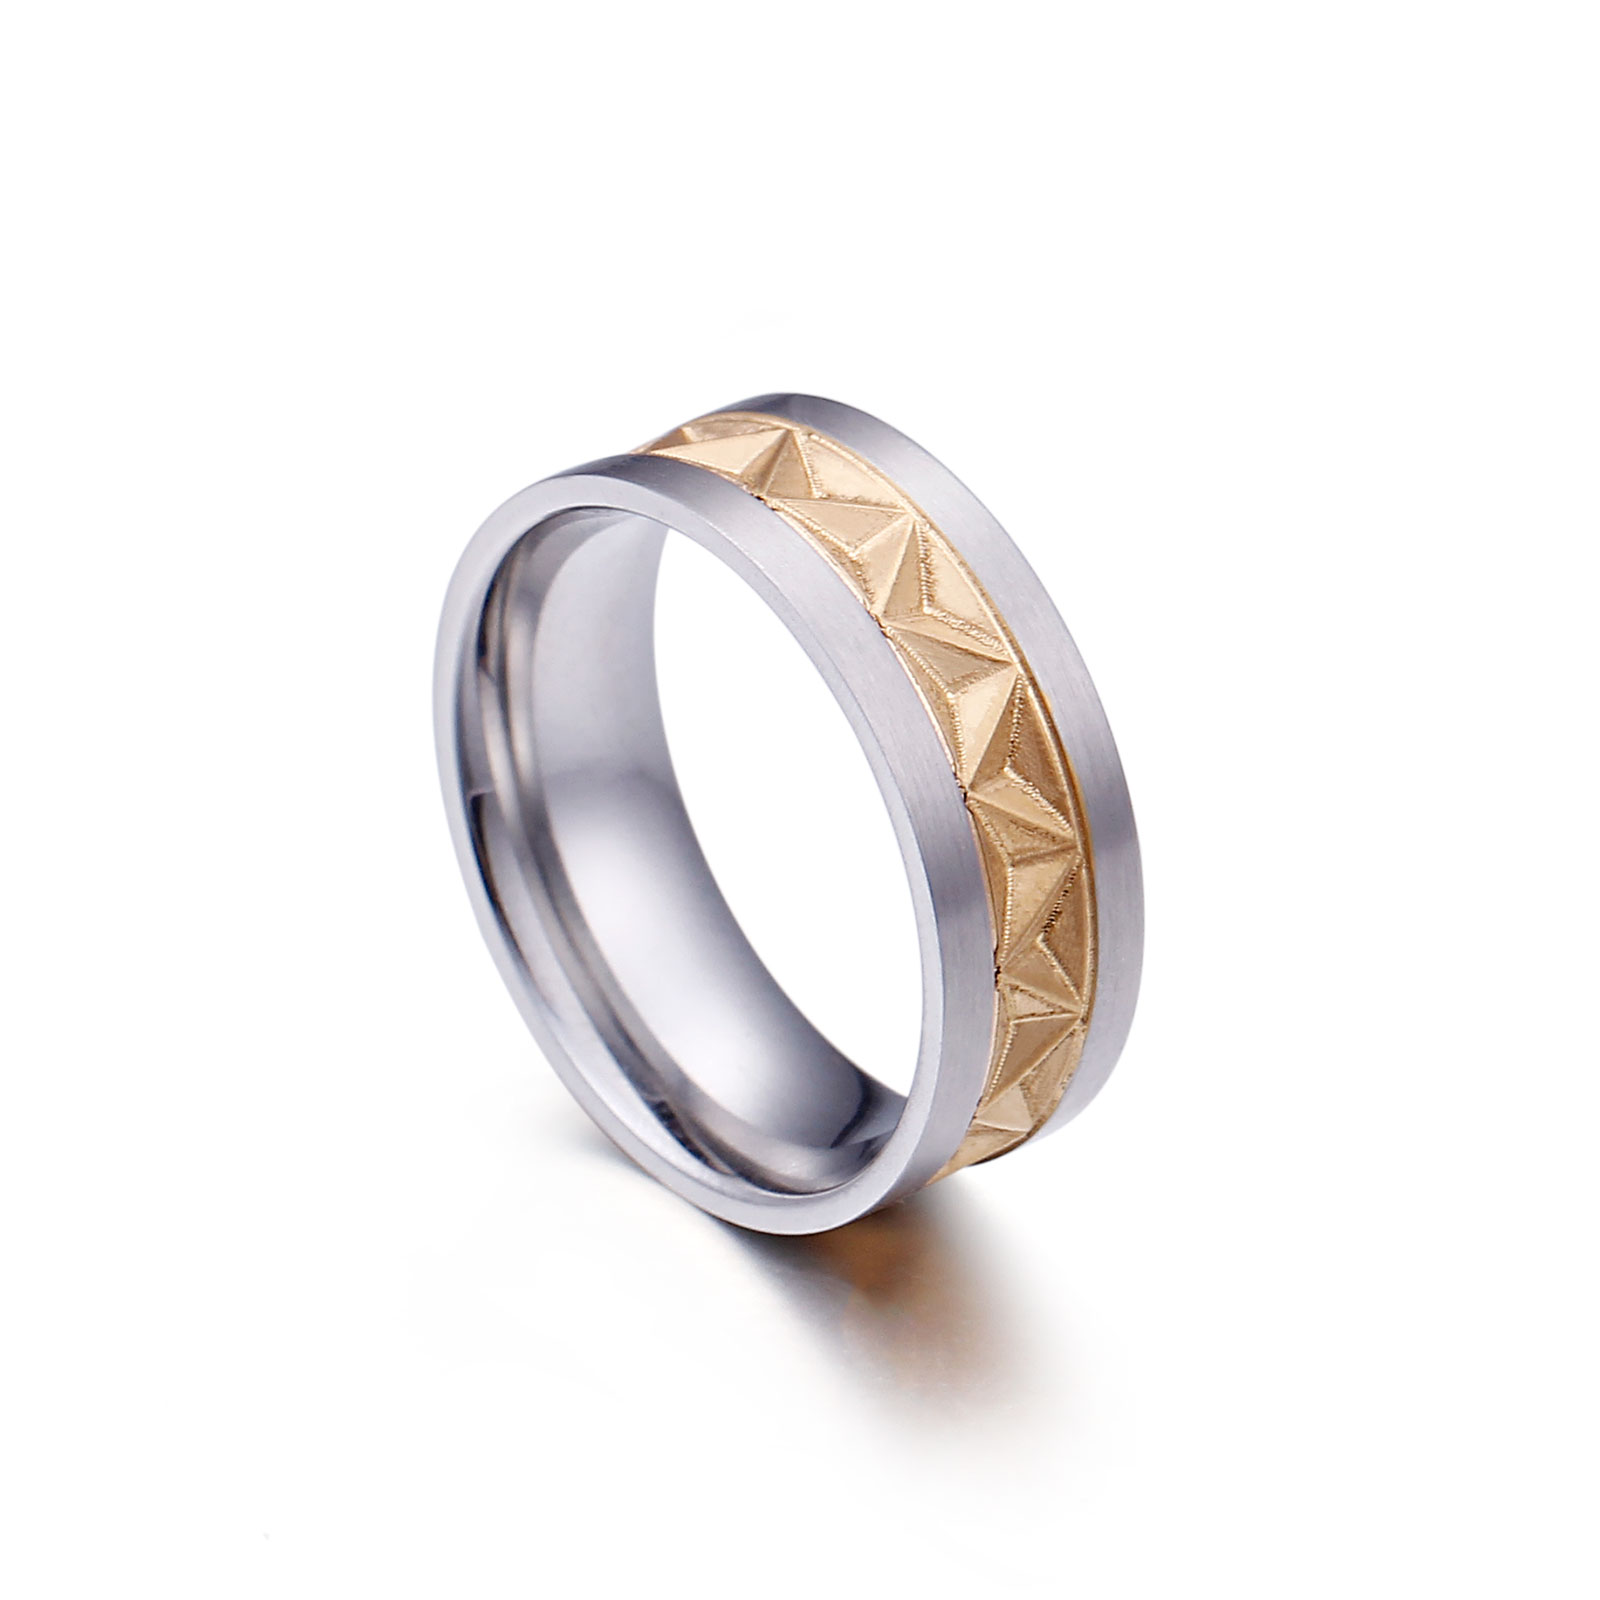 Stainless Steel Mixed Colors Engraved Pattern Rings For Men